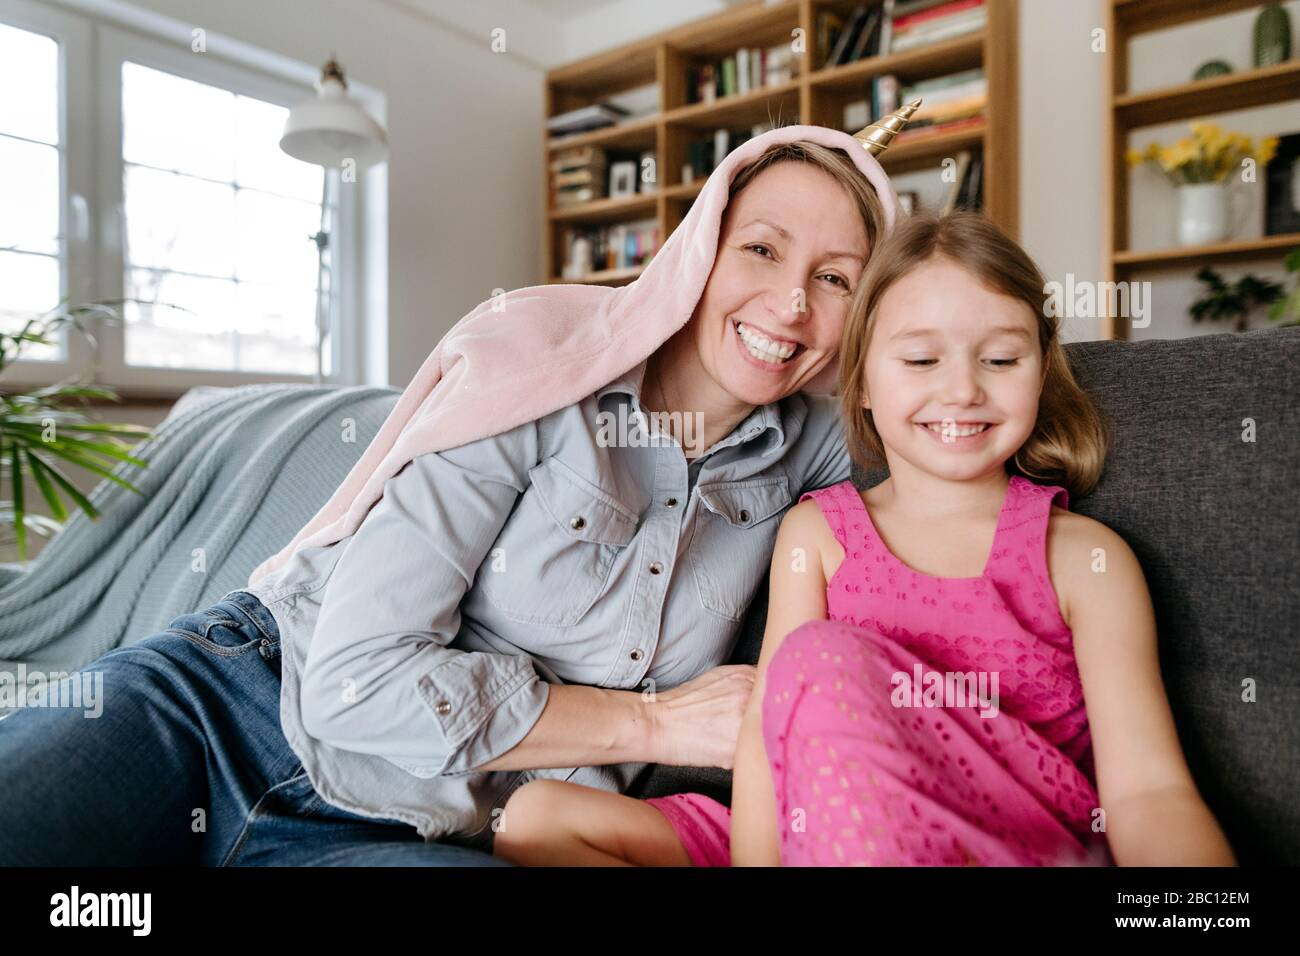 Portrait of happy mother and her little daughter sitting together on the couch having fun Stock Photo